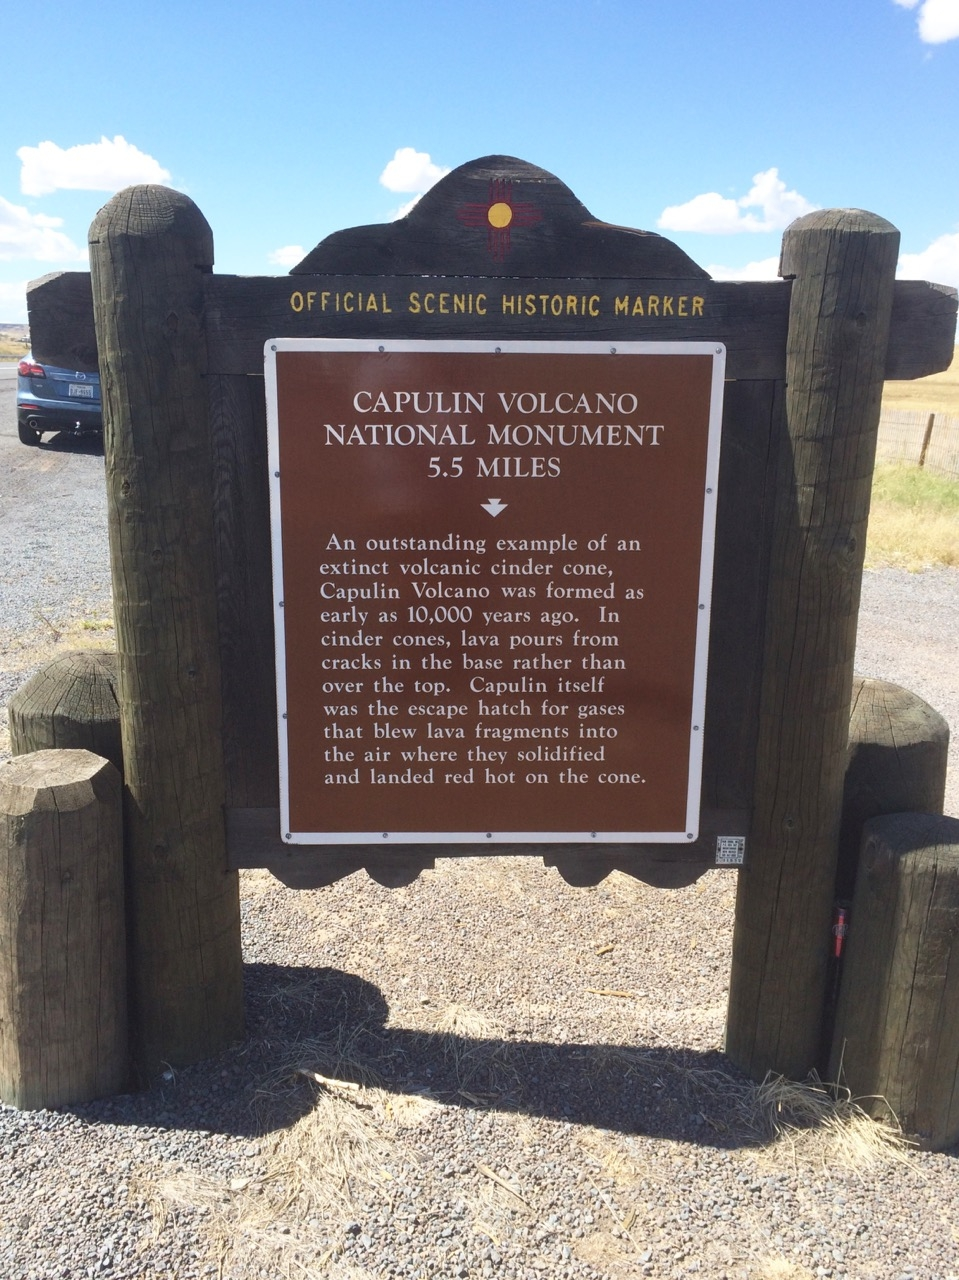 Capulin Volcano National Monument Marker